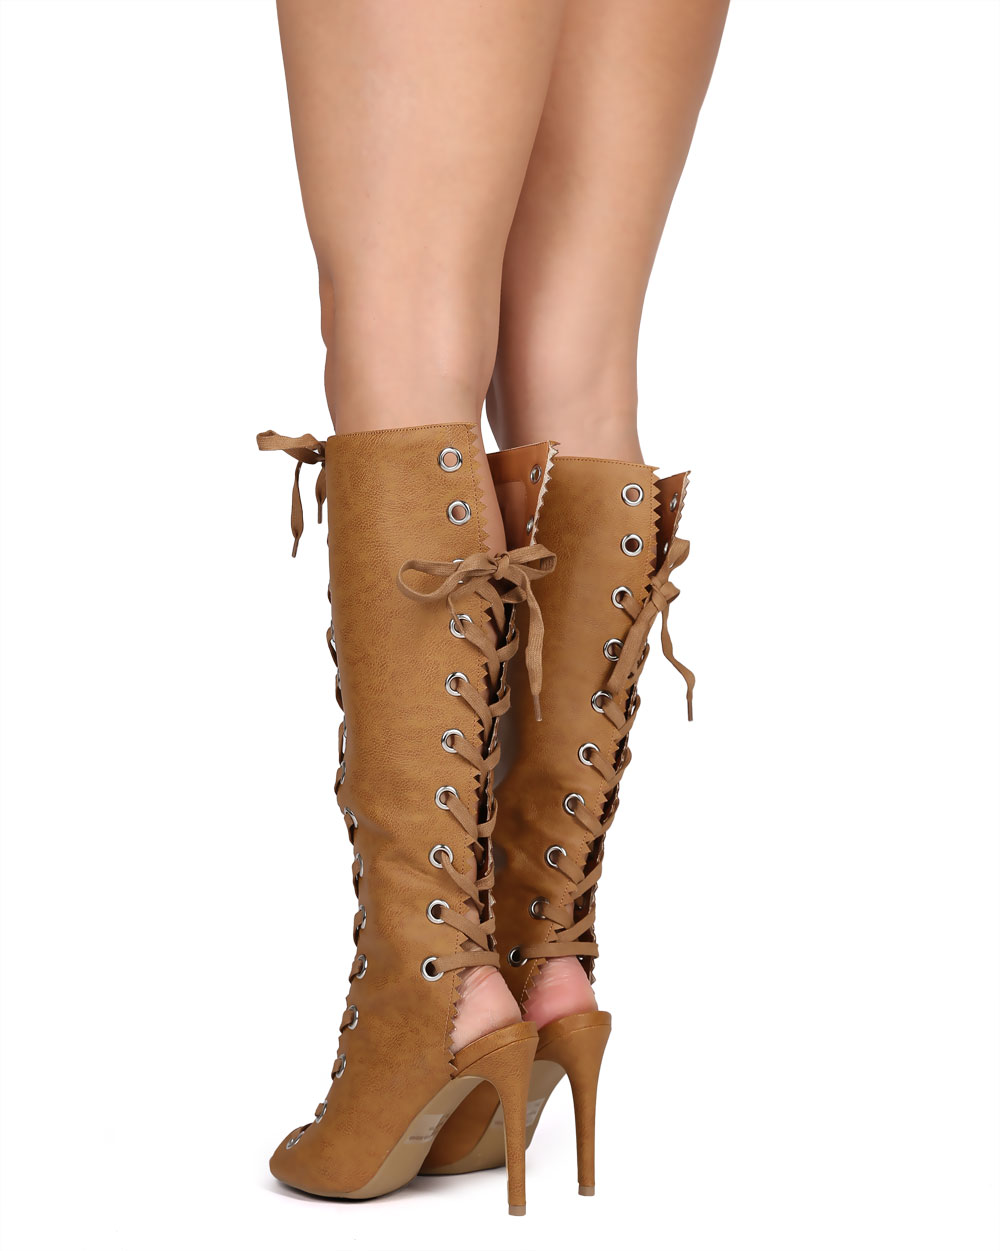 Wild Diva DH74 Women Distressed Peep Toe Knee High Ankle Cutout Gladiator Boot